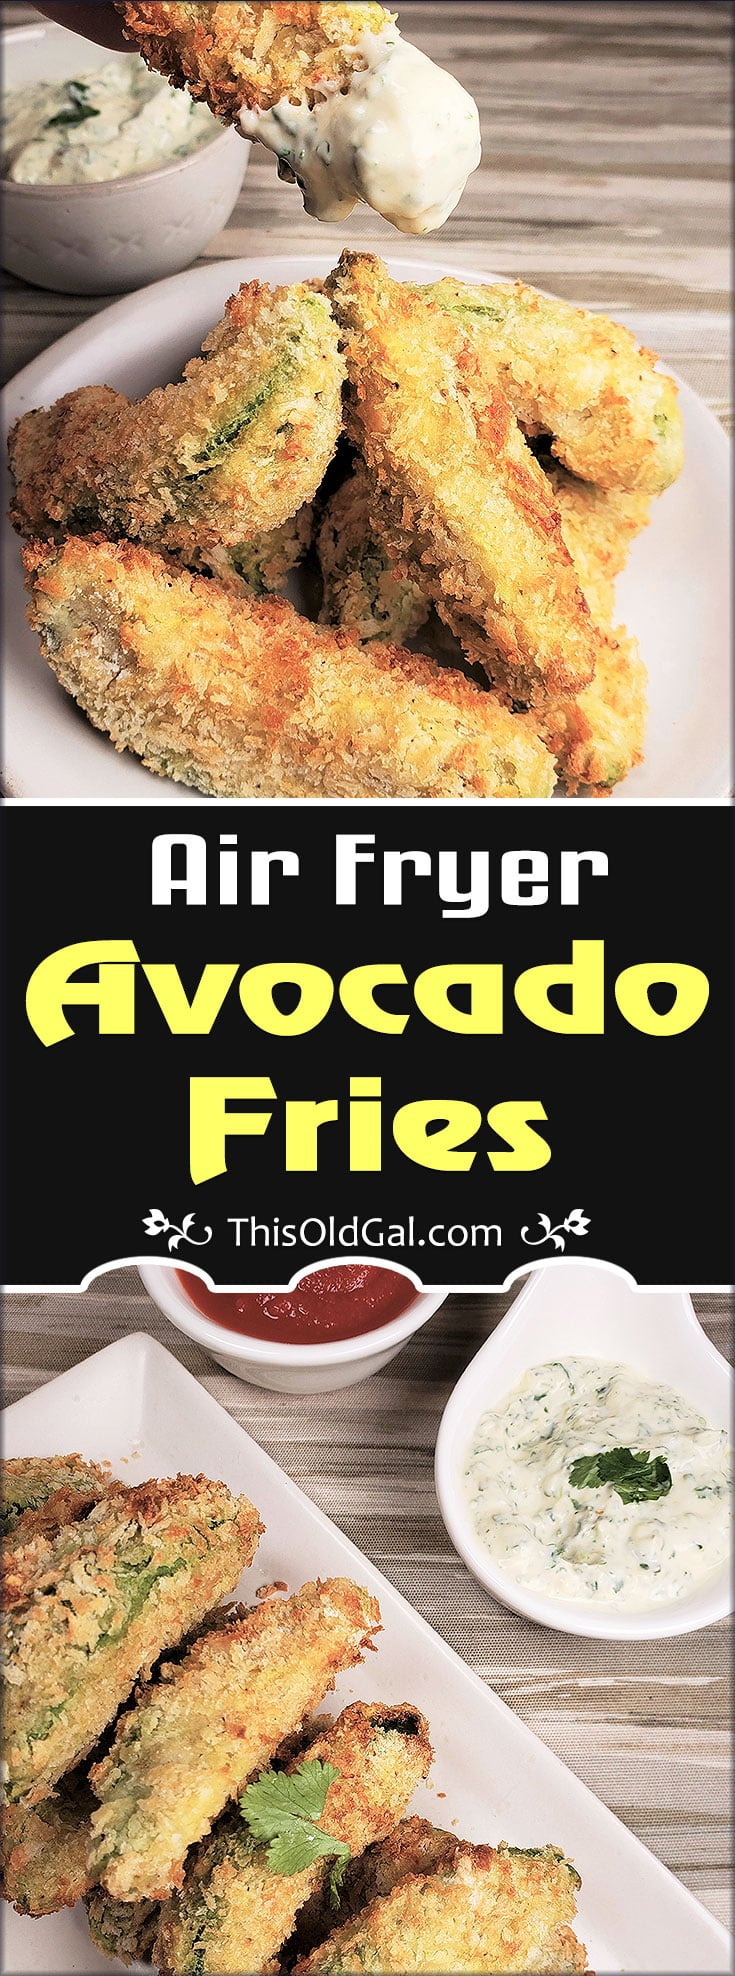 Creamy & Crispy Air Fryer Avocado Fries